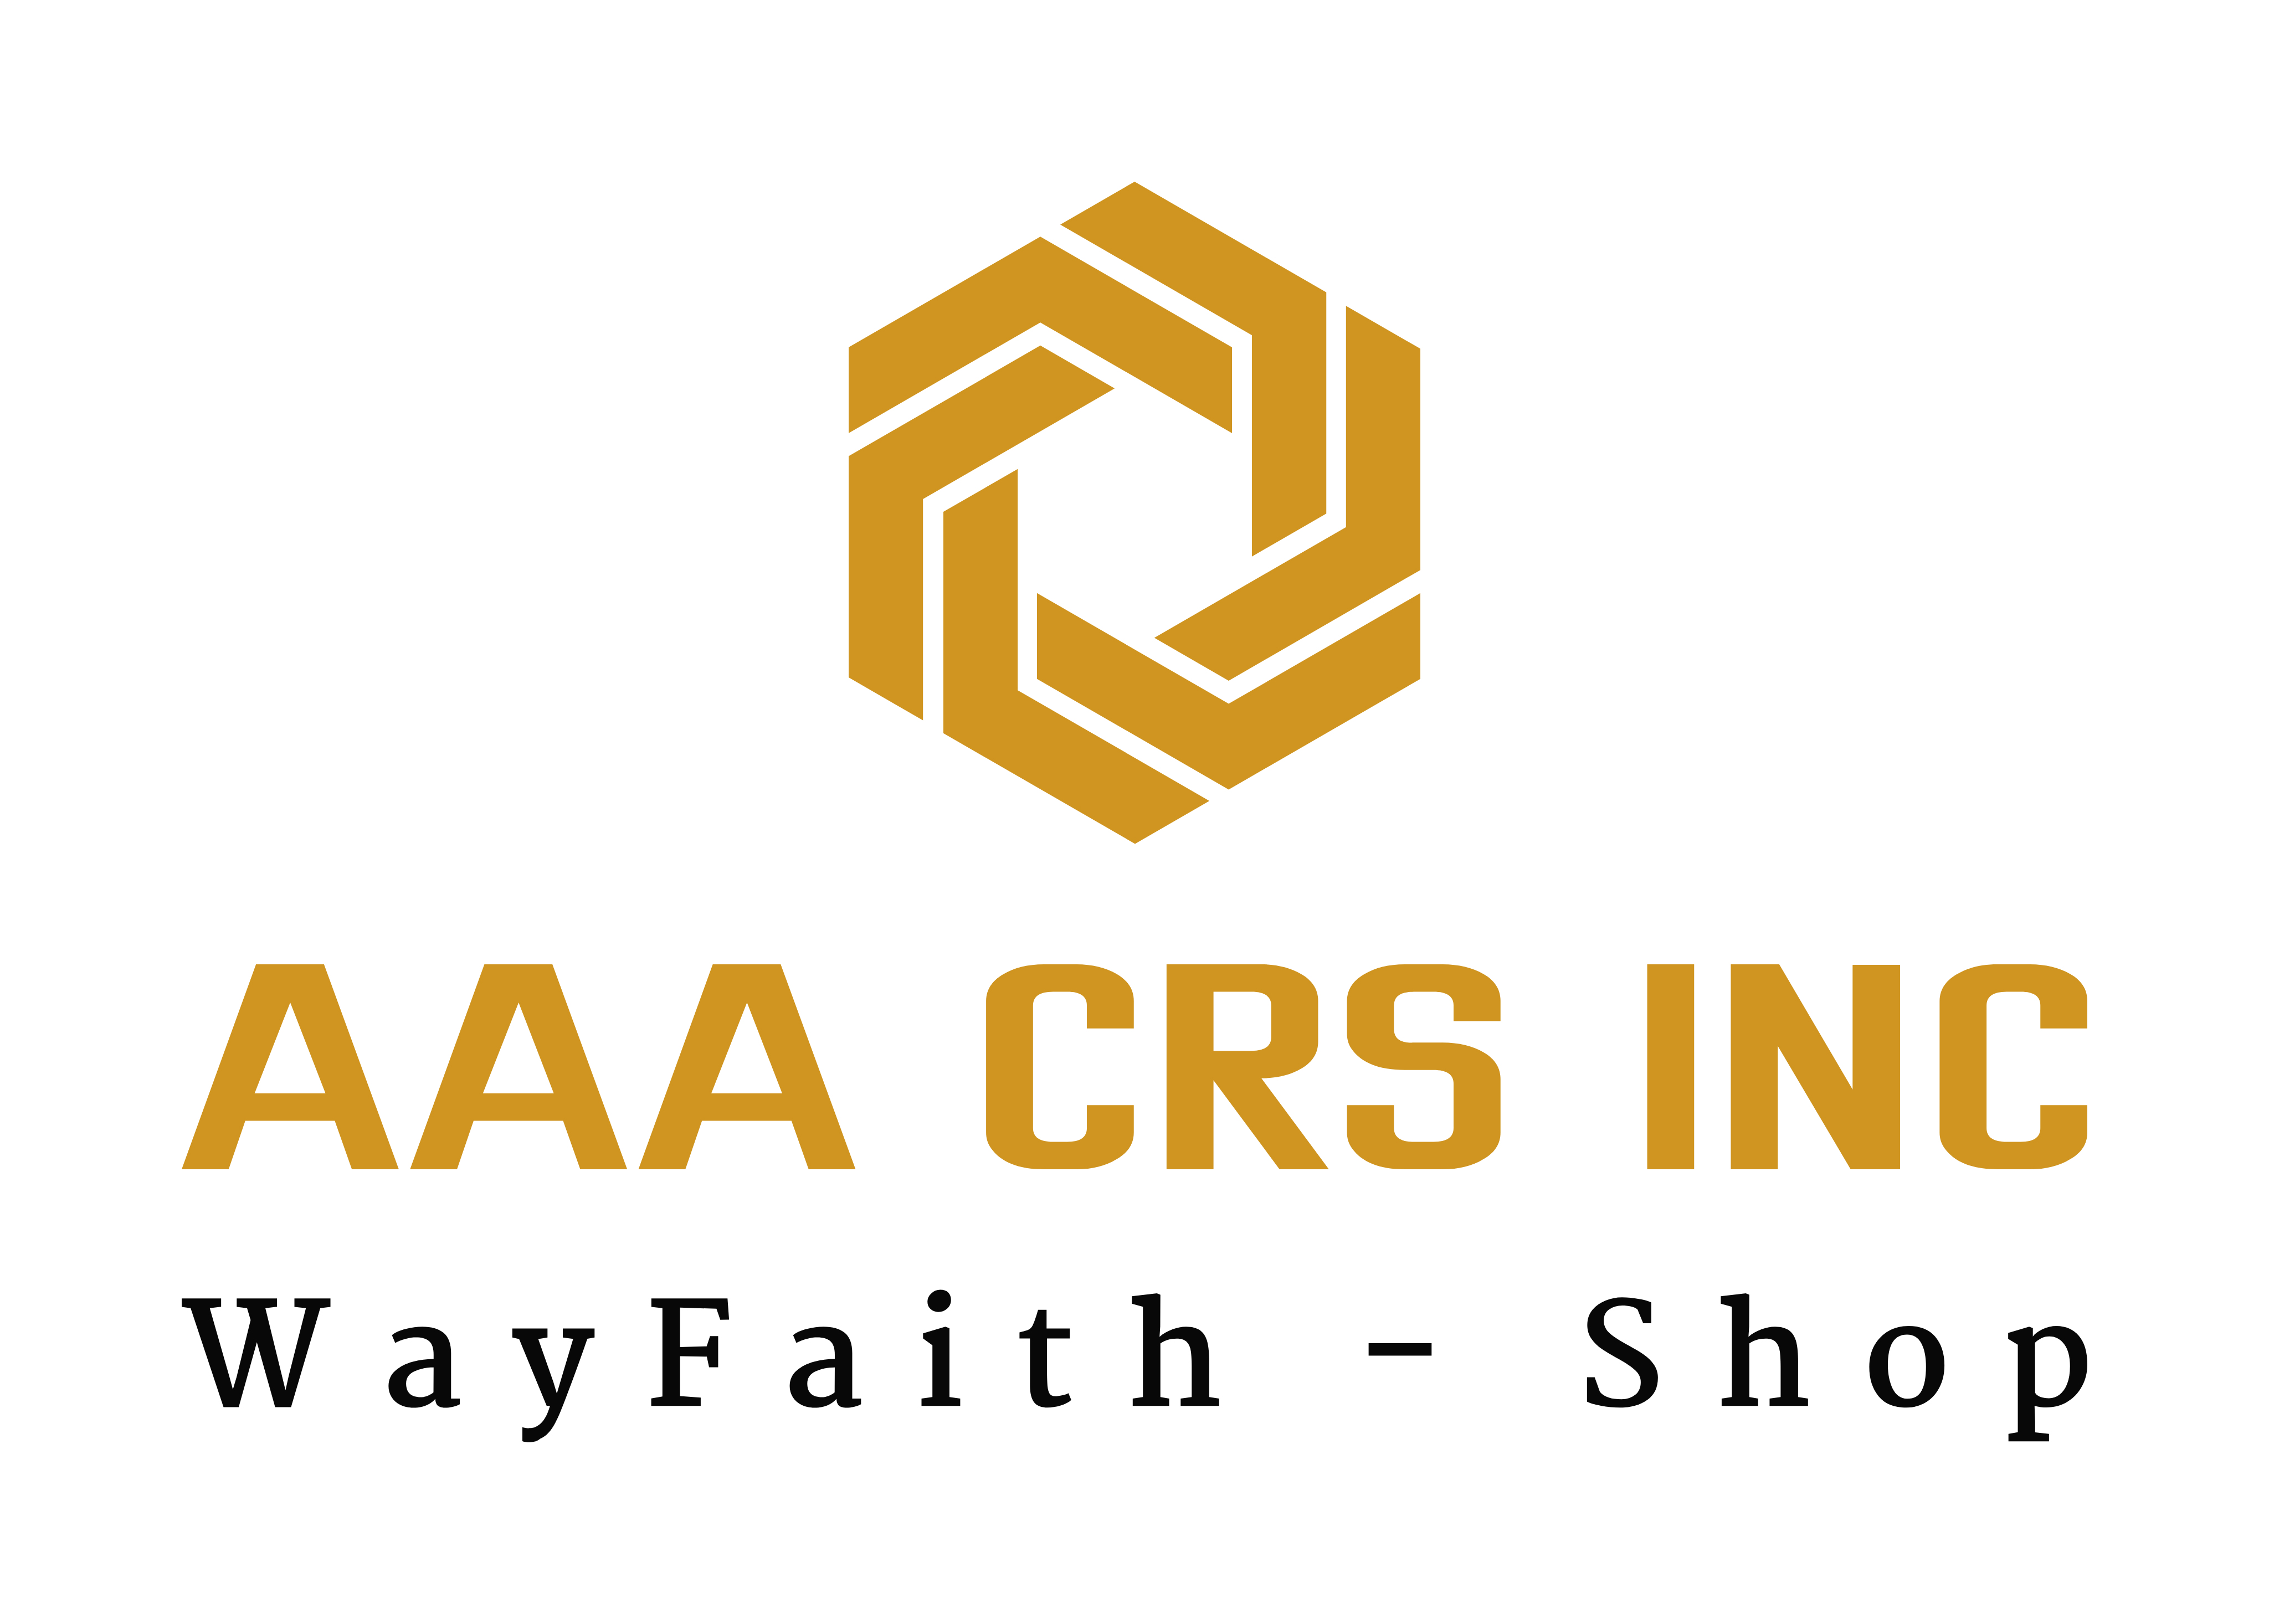 AAA CRS INC, Wayfaith.com - Shop